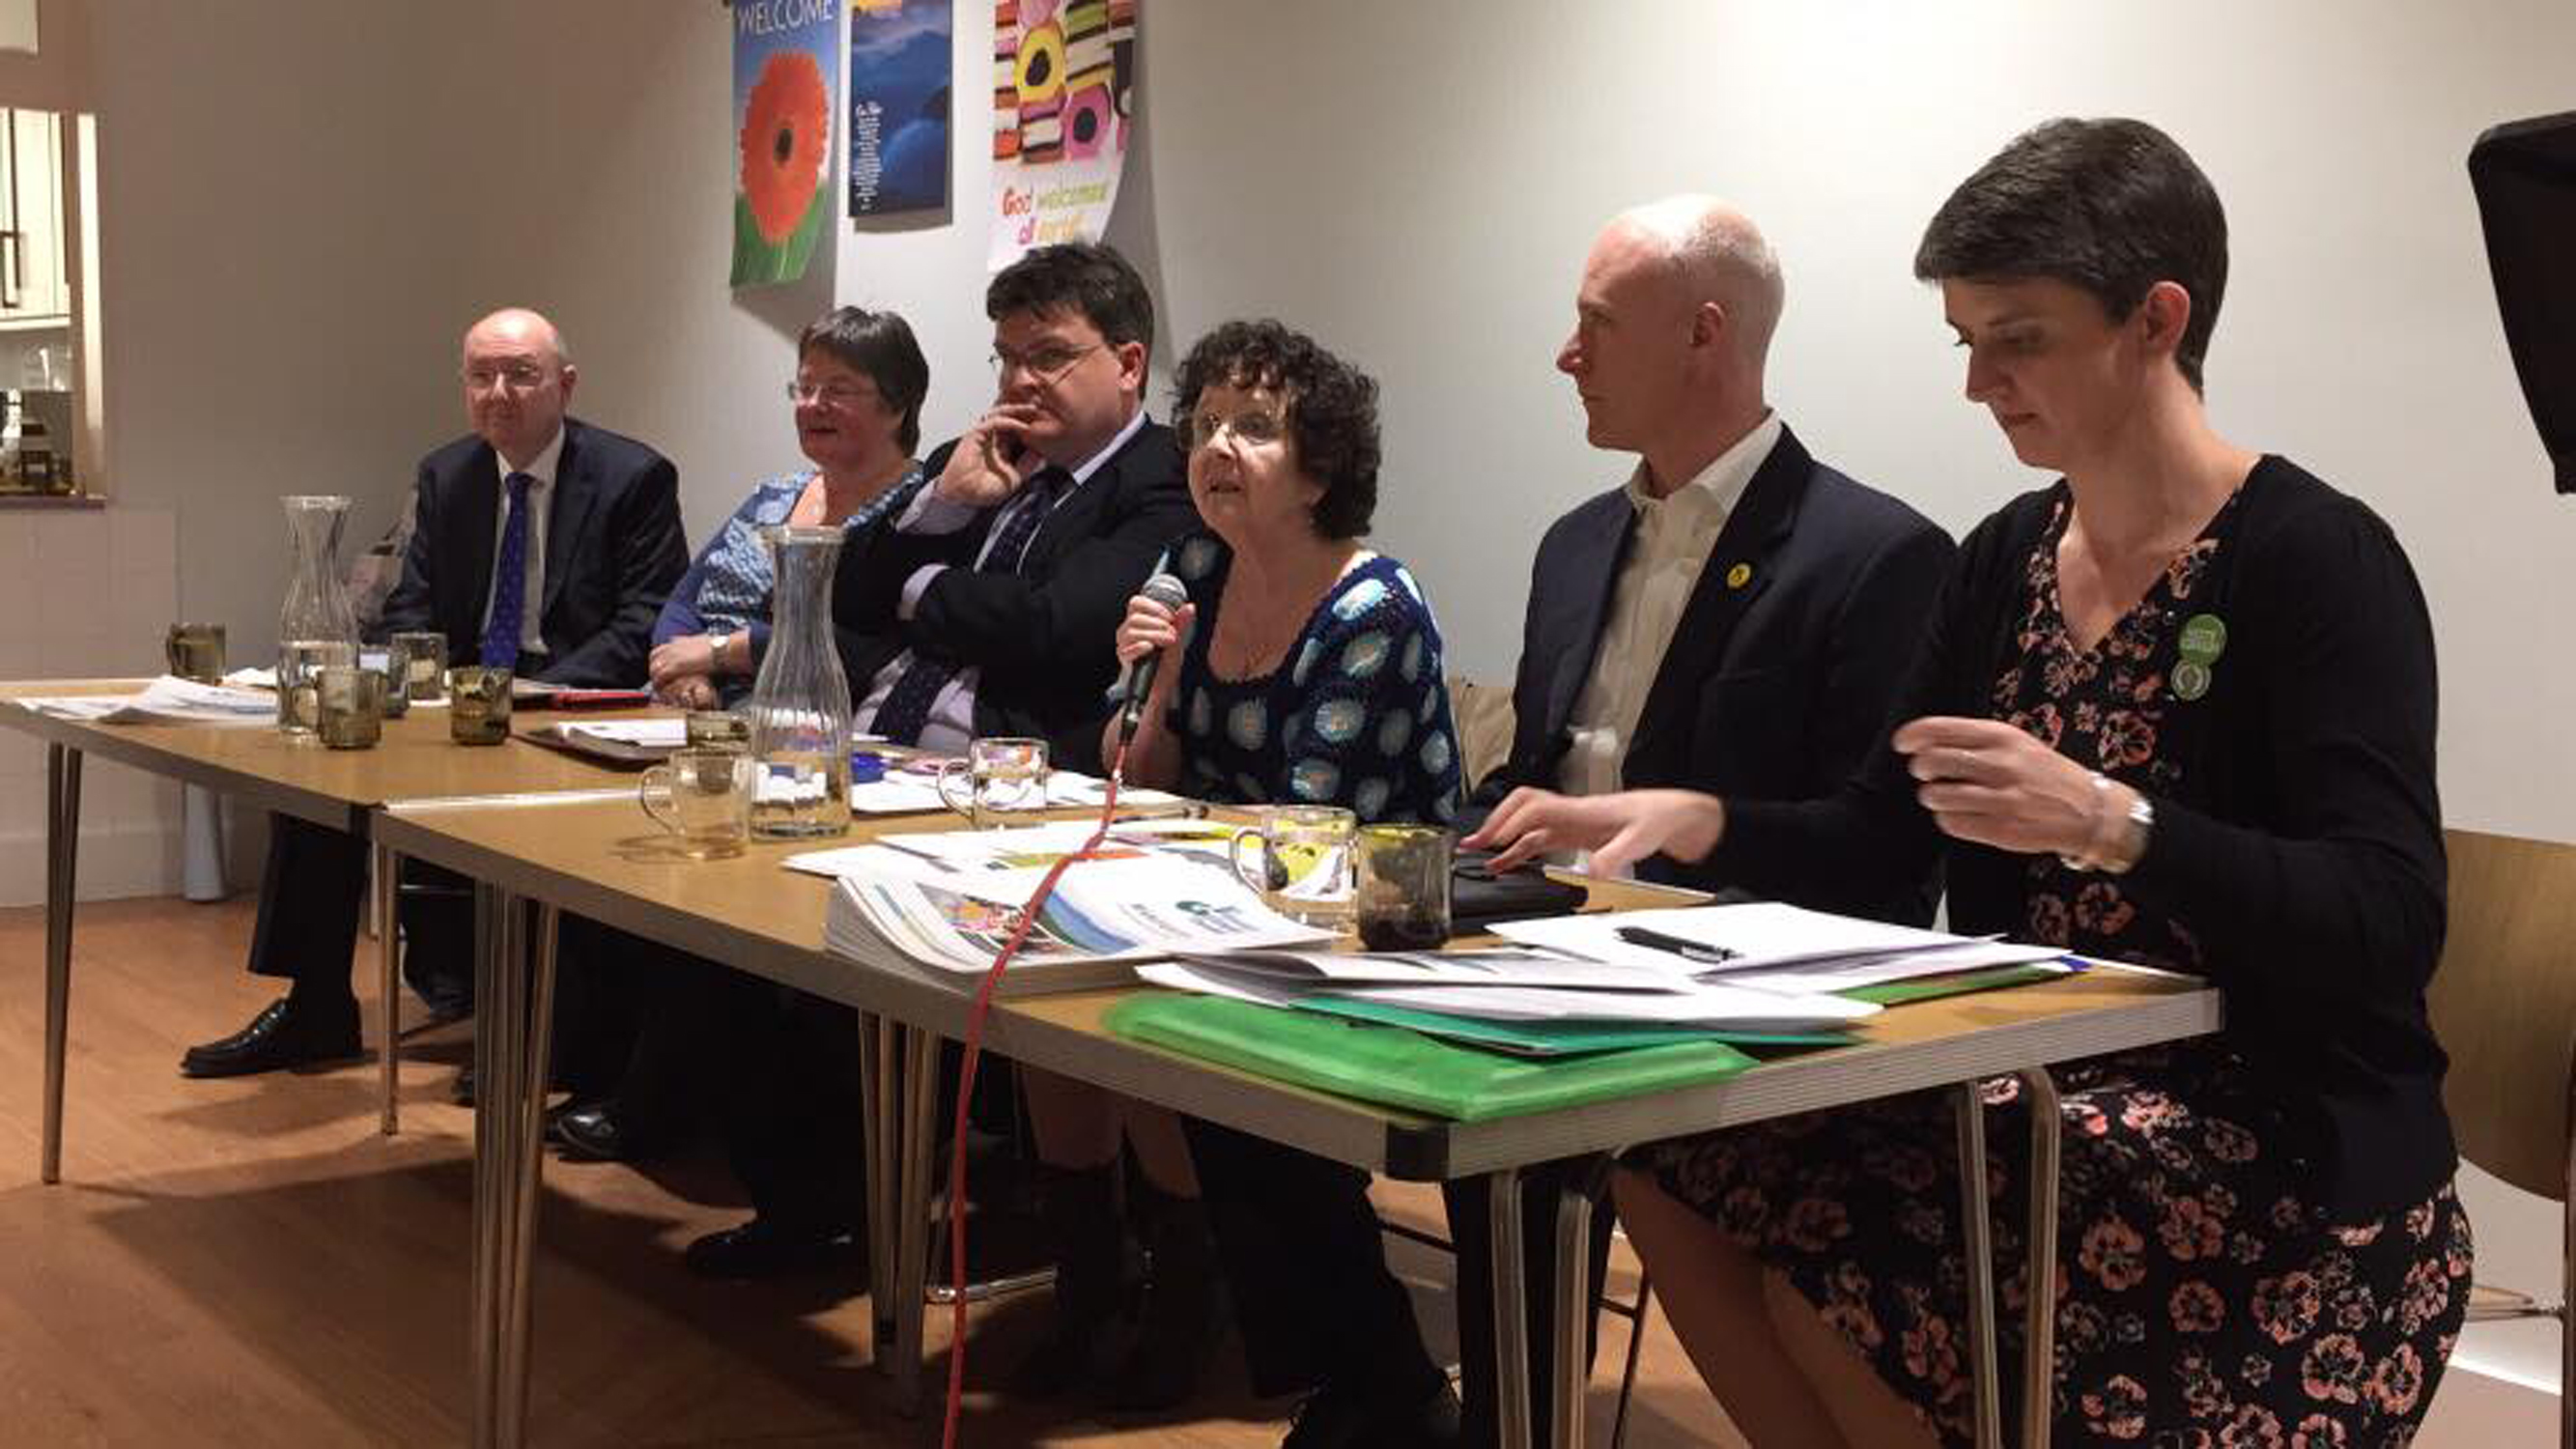 Politicians and members of the third sector held a hustings discussing the manifesto